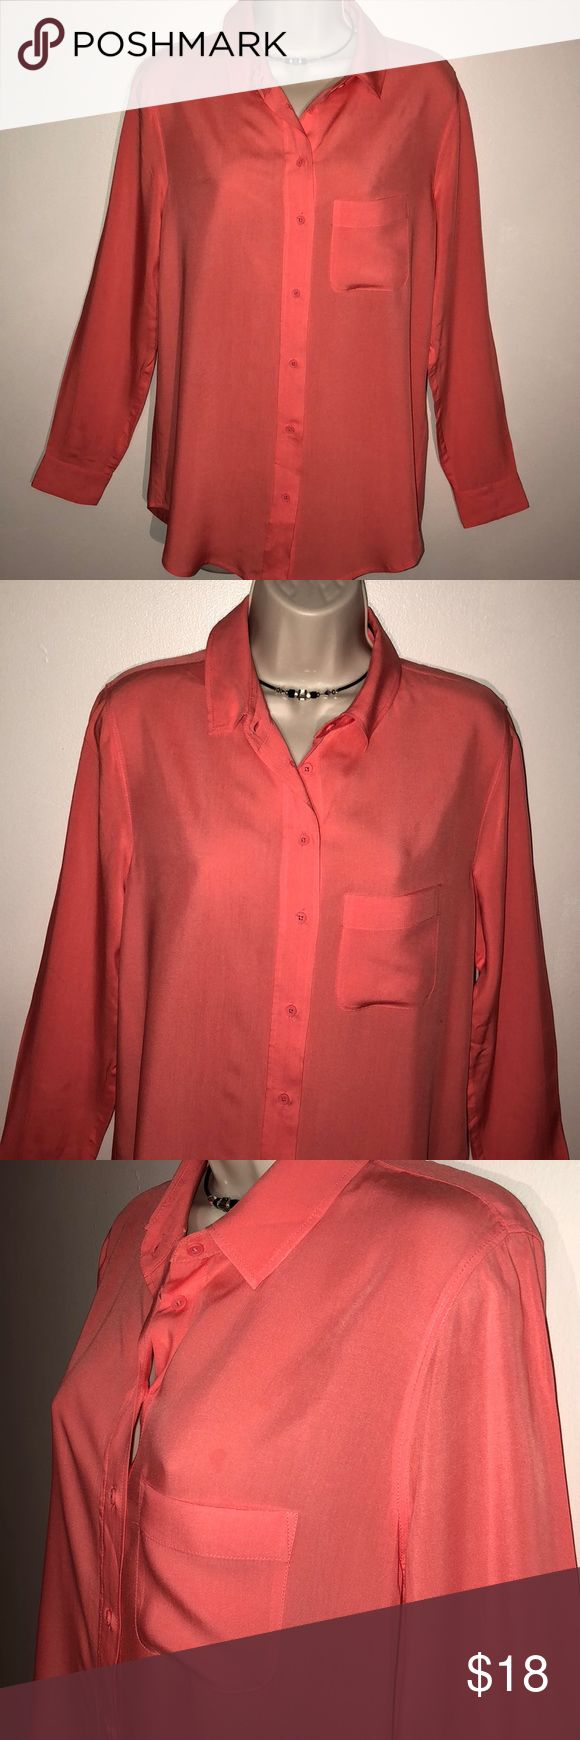 🆕 BANANA REPUBLIC LONG SLEEVED RAYON CORAL BLOUSE Banana Republic Small Button Down Blouse➖Coral color with Matching Coral Buttons➖Longer Style➖Would look nice tucked in or worn out➖Never Worn Banana Republic Tops Button Down Shirts